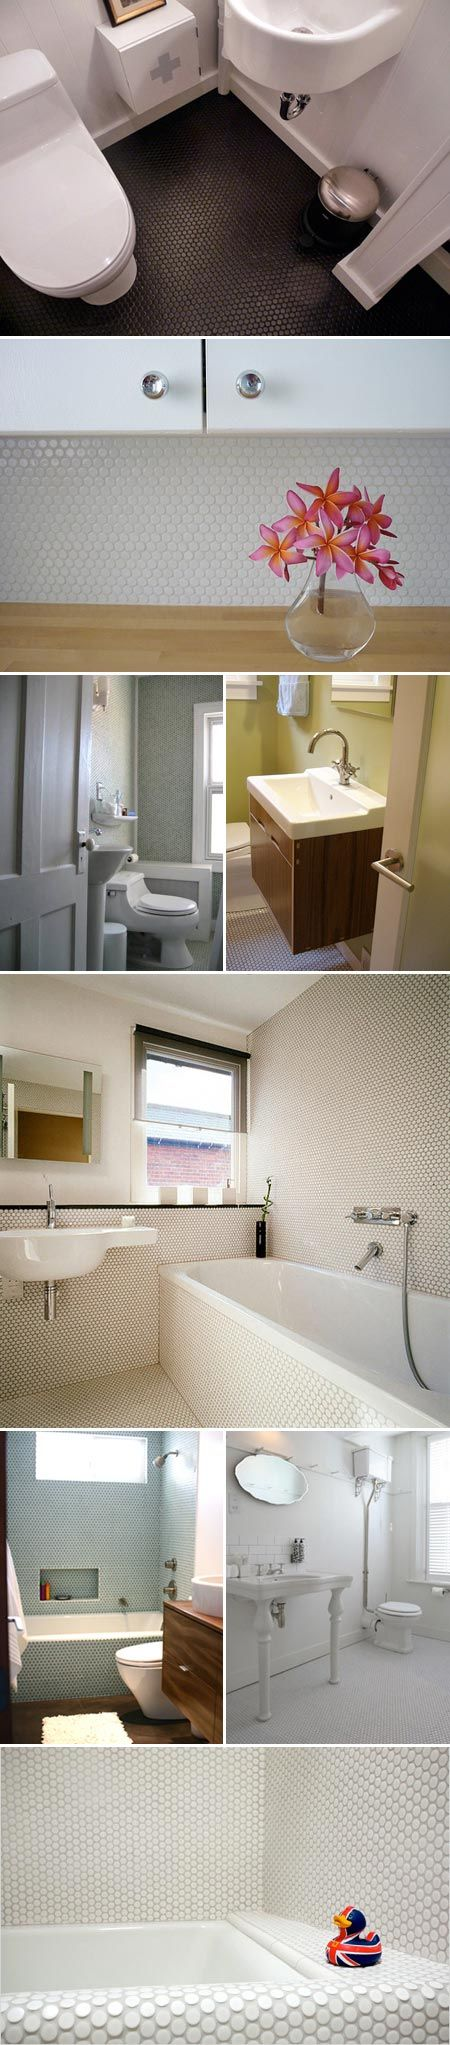 Best Penny Rounds Images Onbathroom Ideas Room